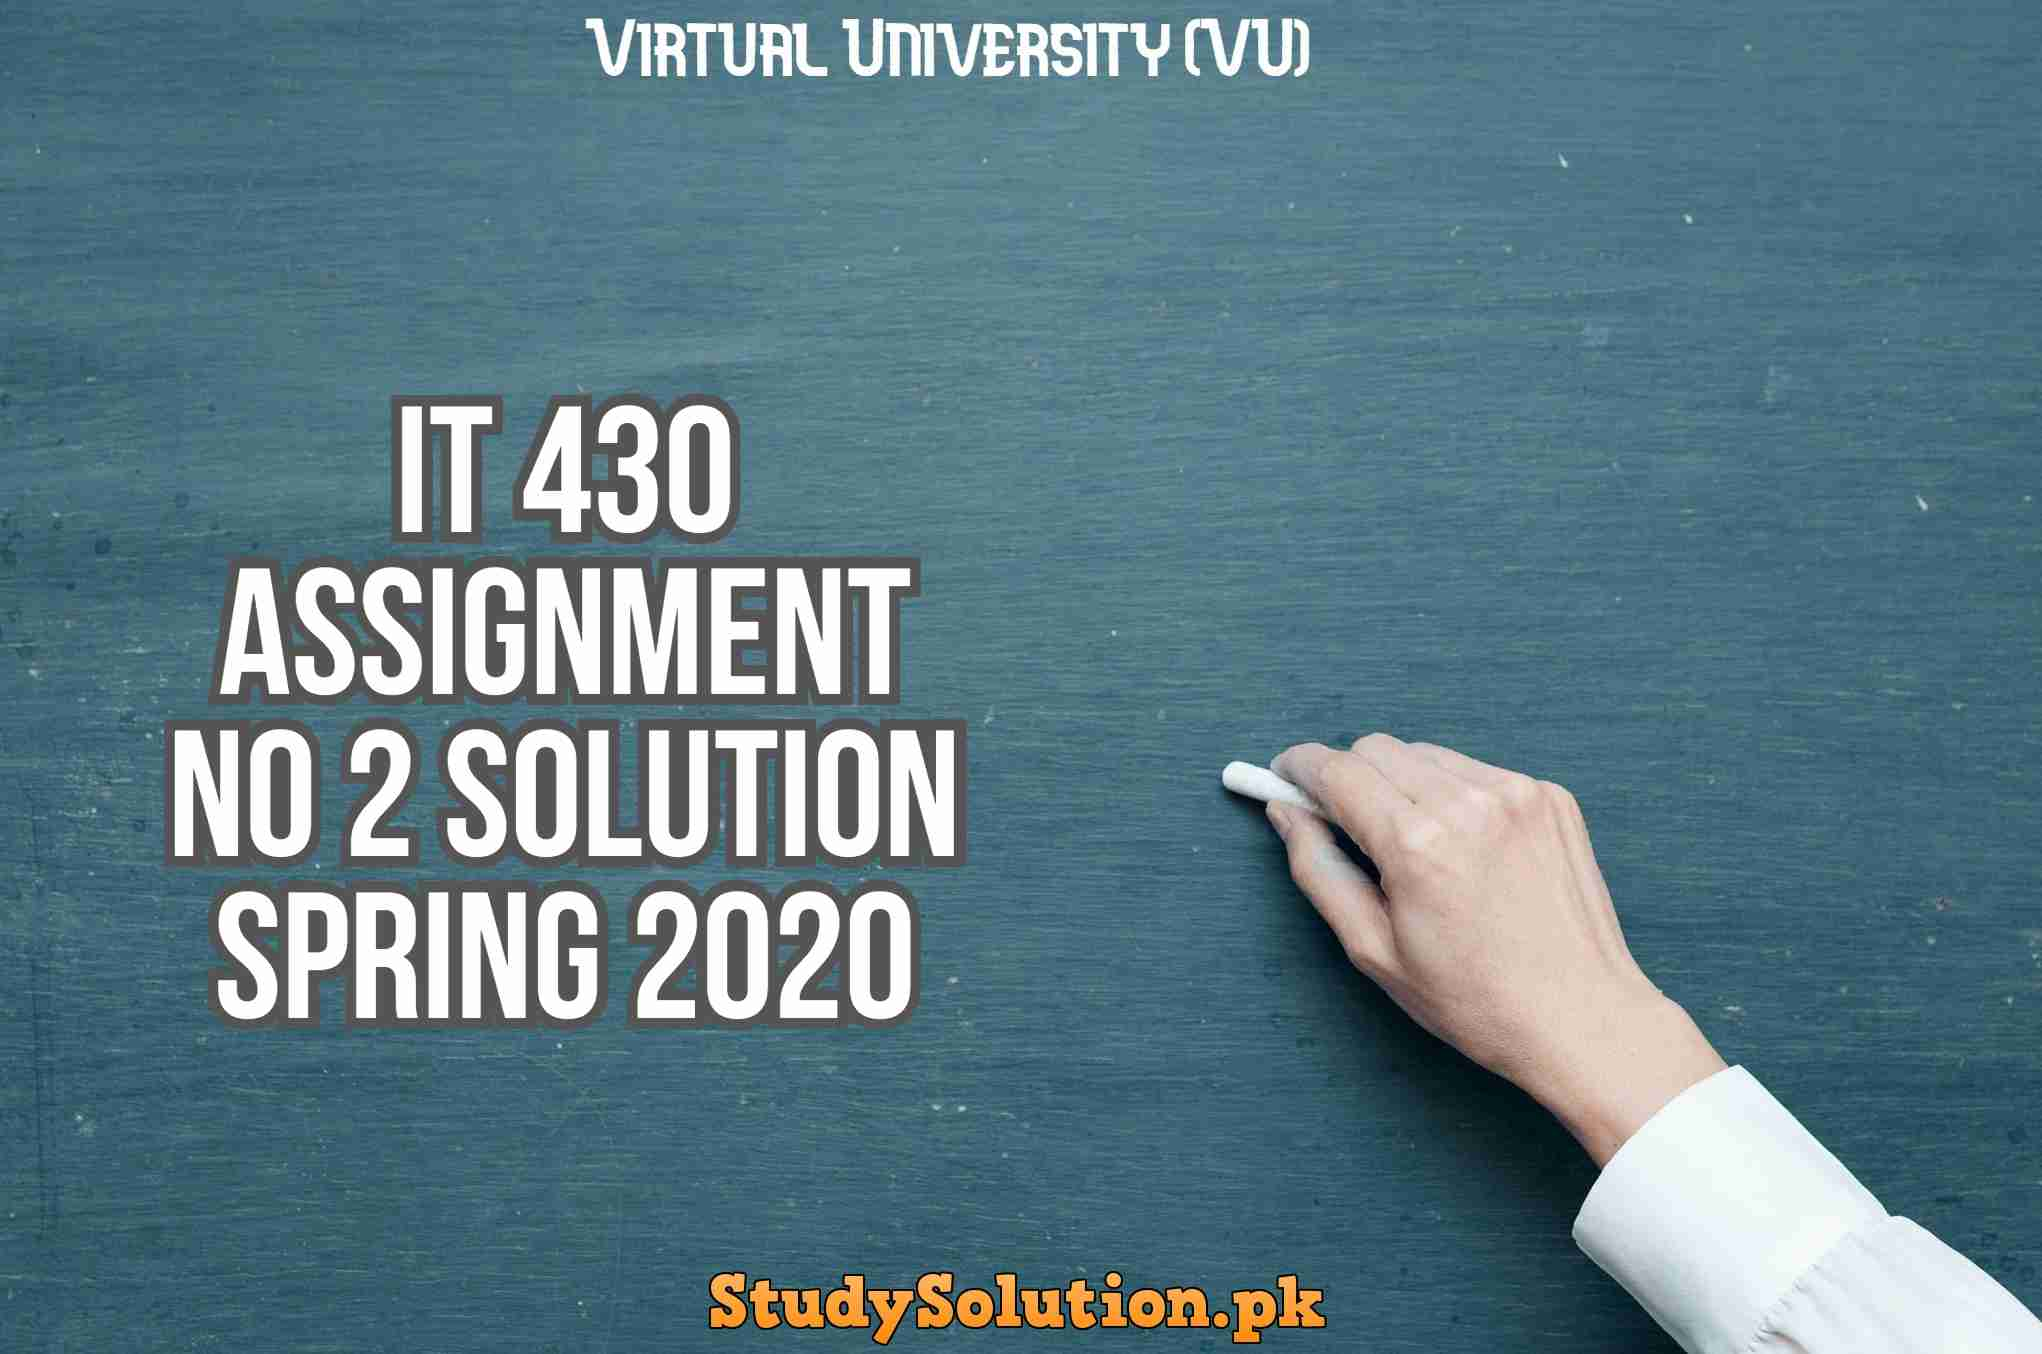 IT 430 Assignment No 2 Solution Spring 2020